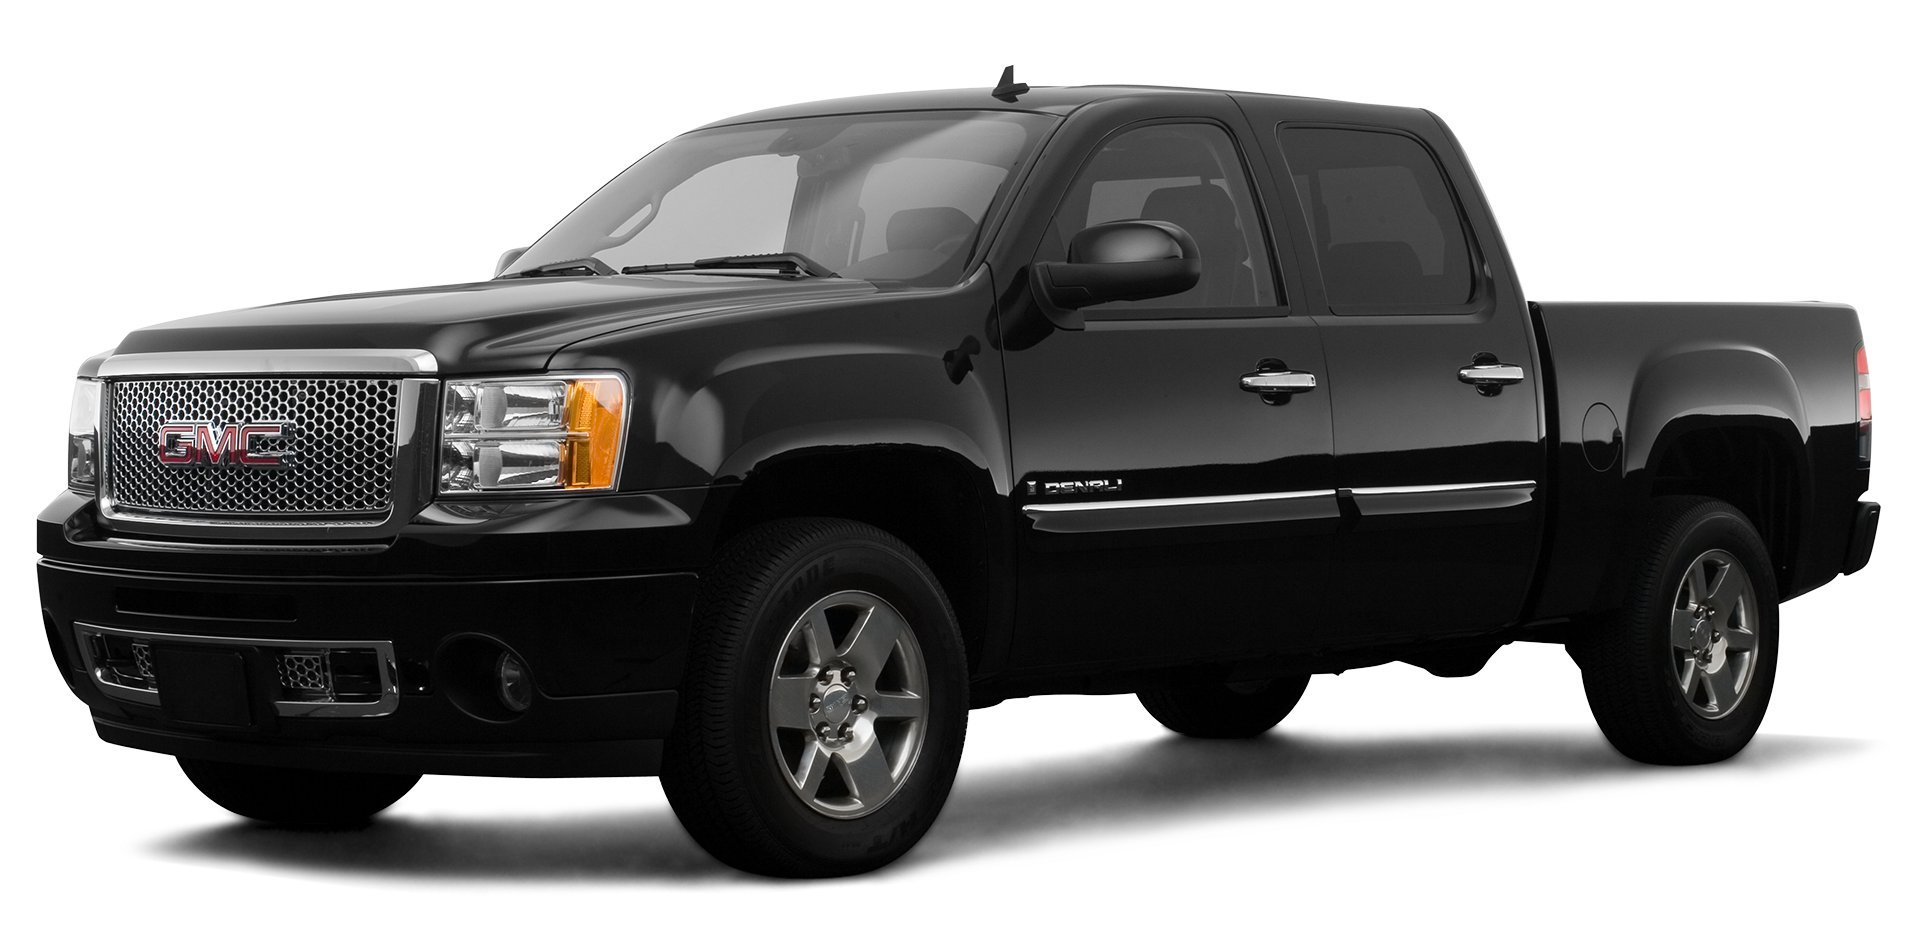 71%2BbMbi2vKL amazon com 2008 cadillac escalade ext reviews, images, and specs  at readyjetset.co